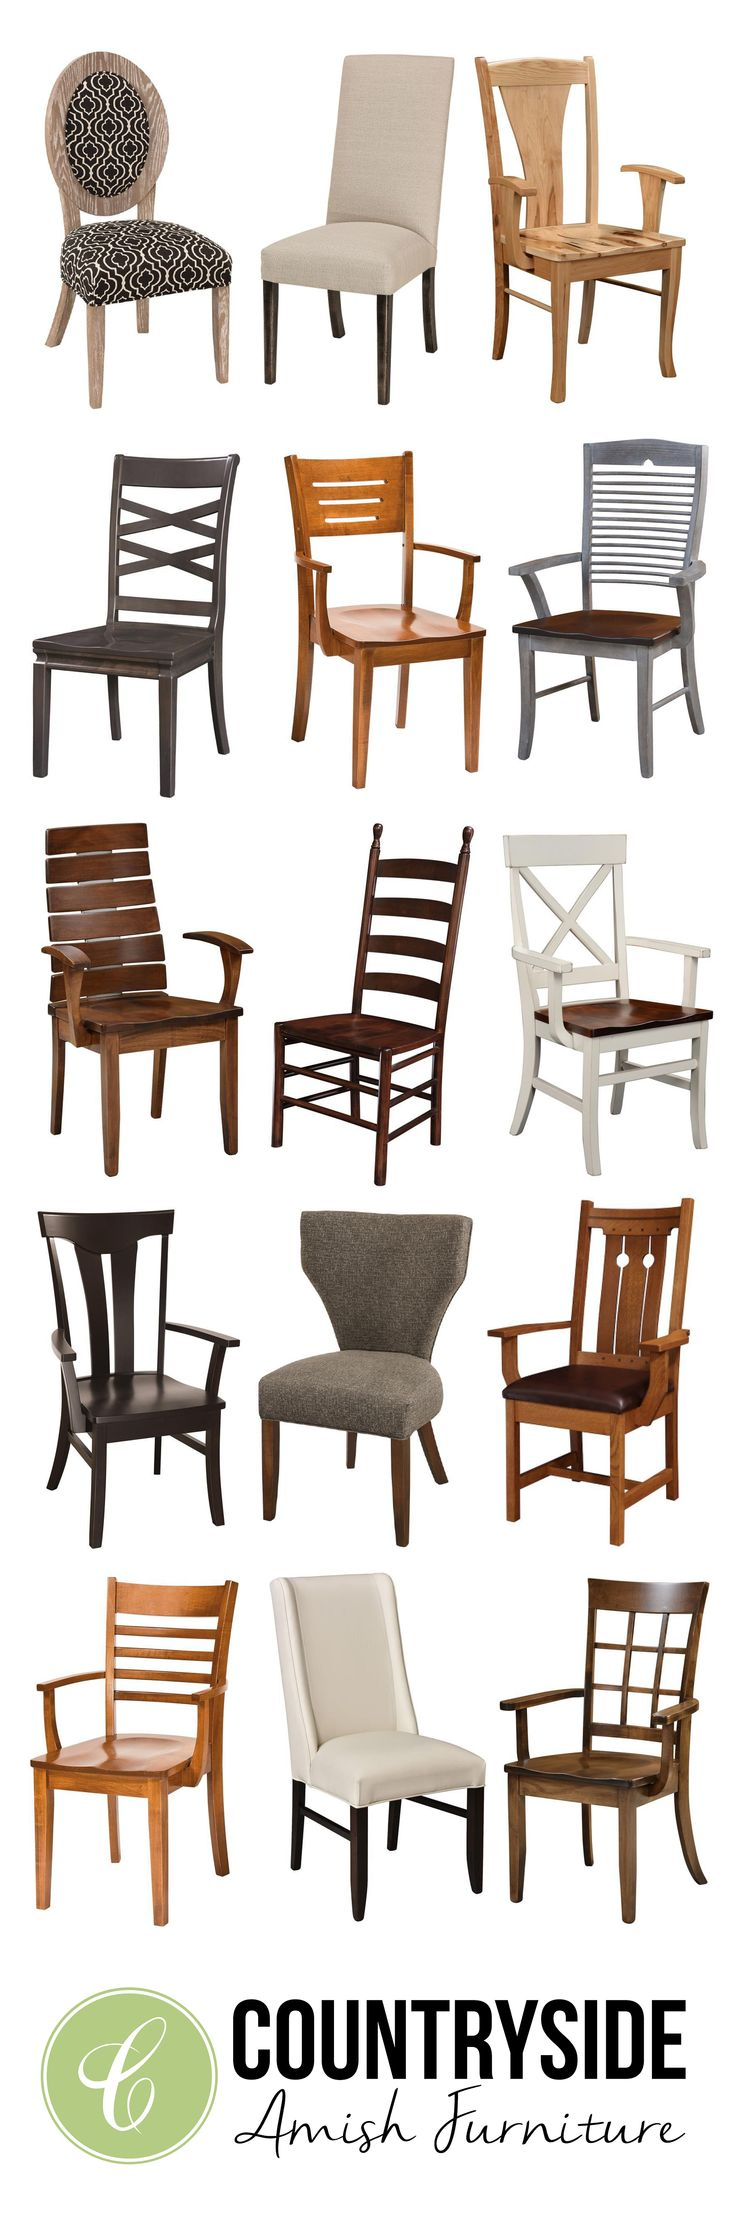 1000 images about Amish Dining Chairs on Pinterest